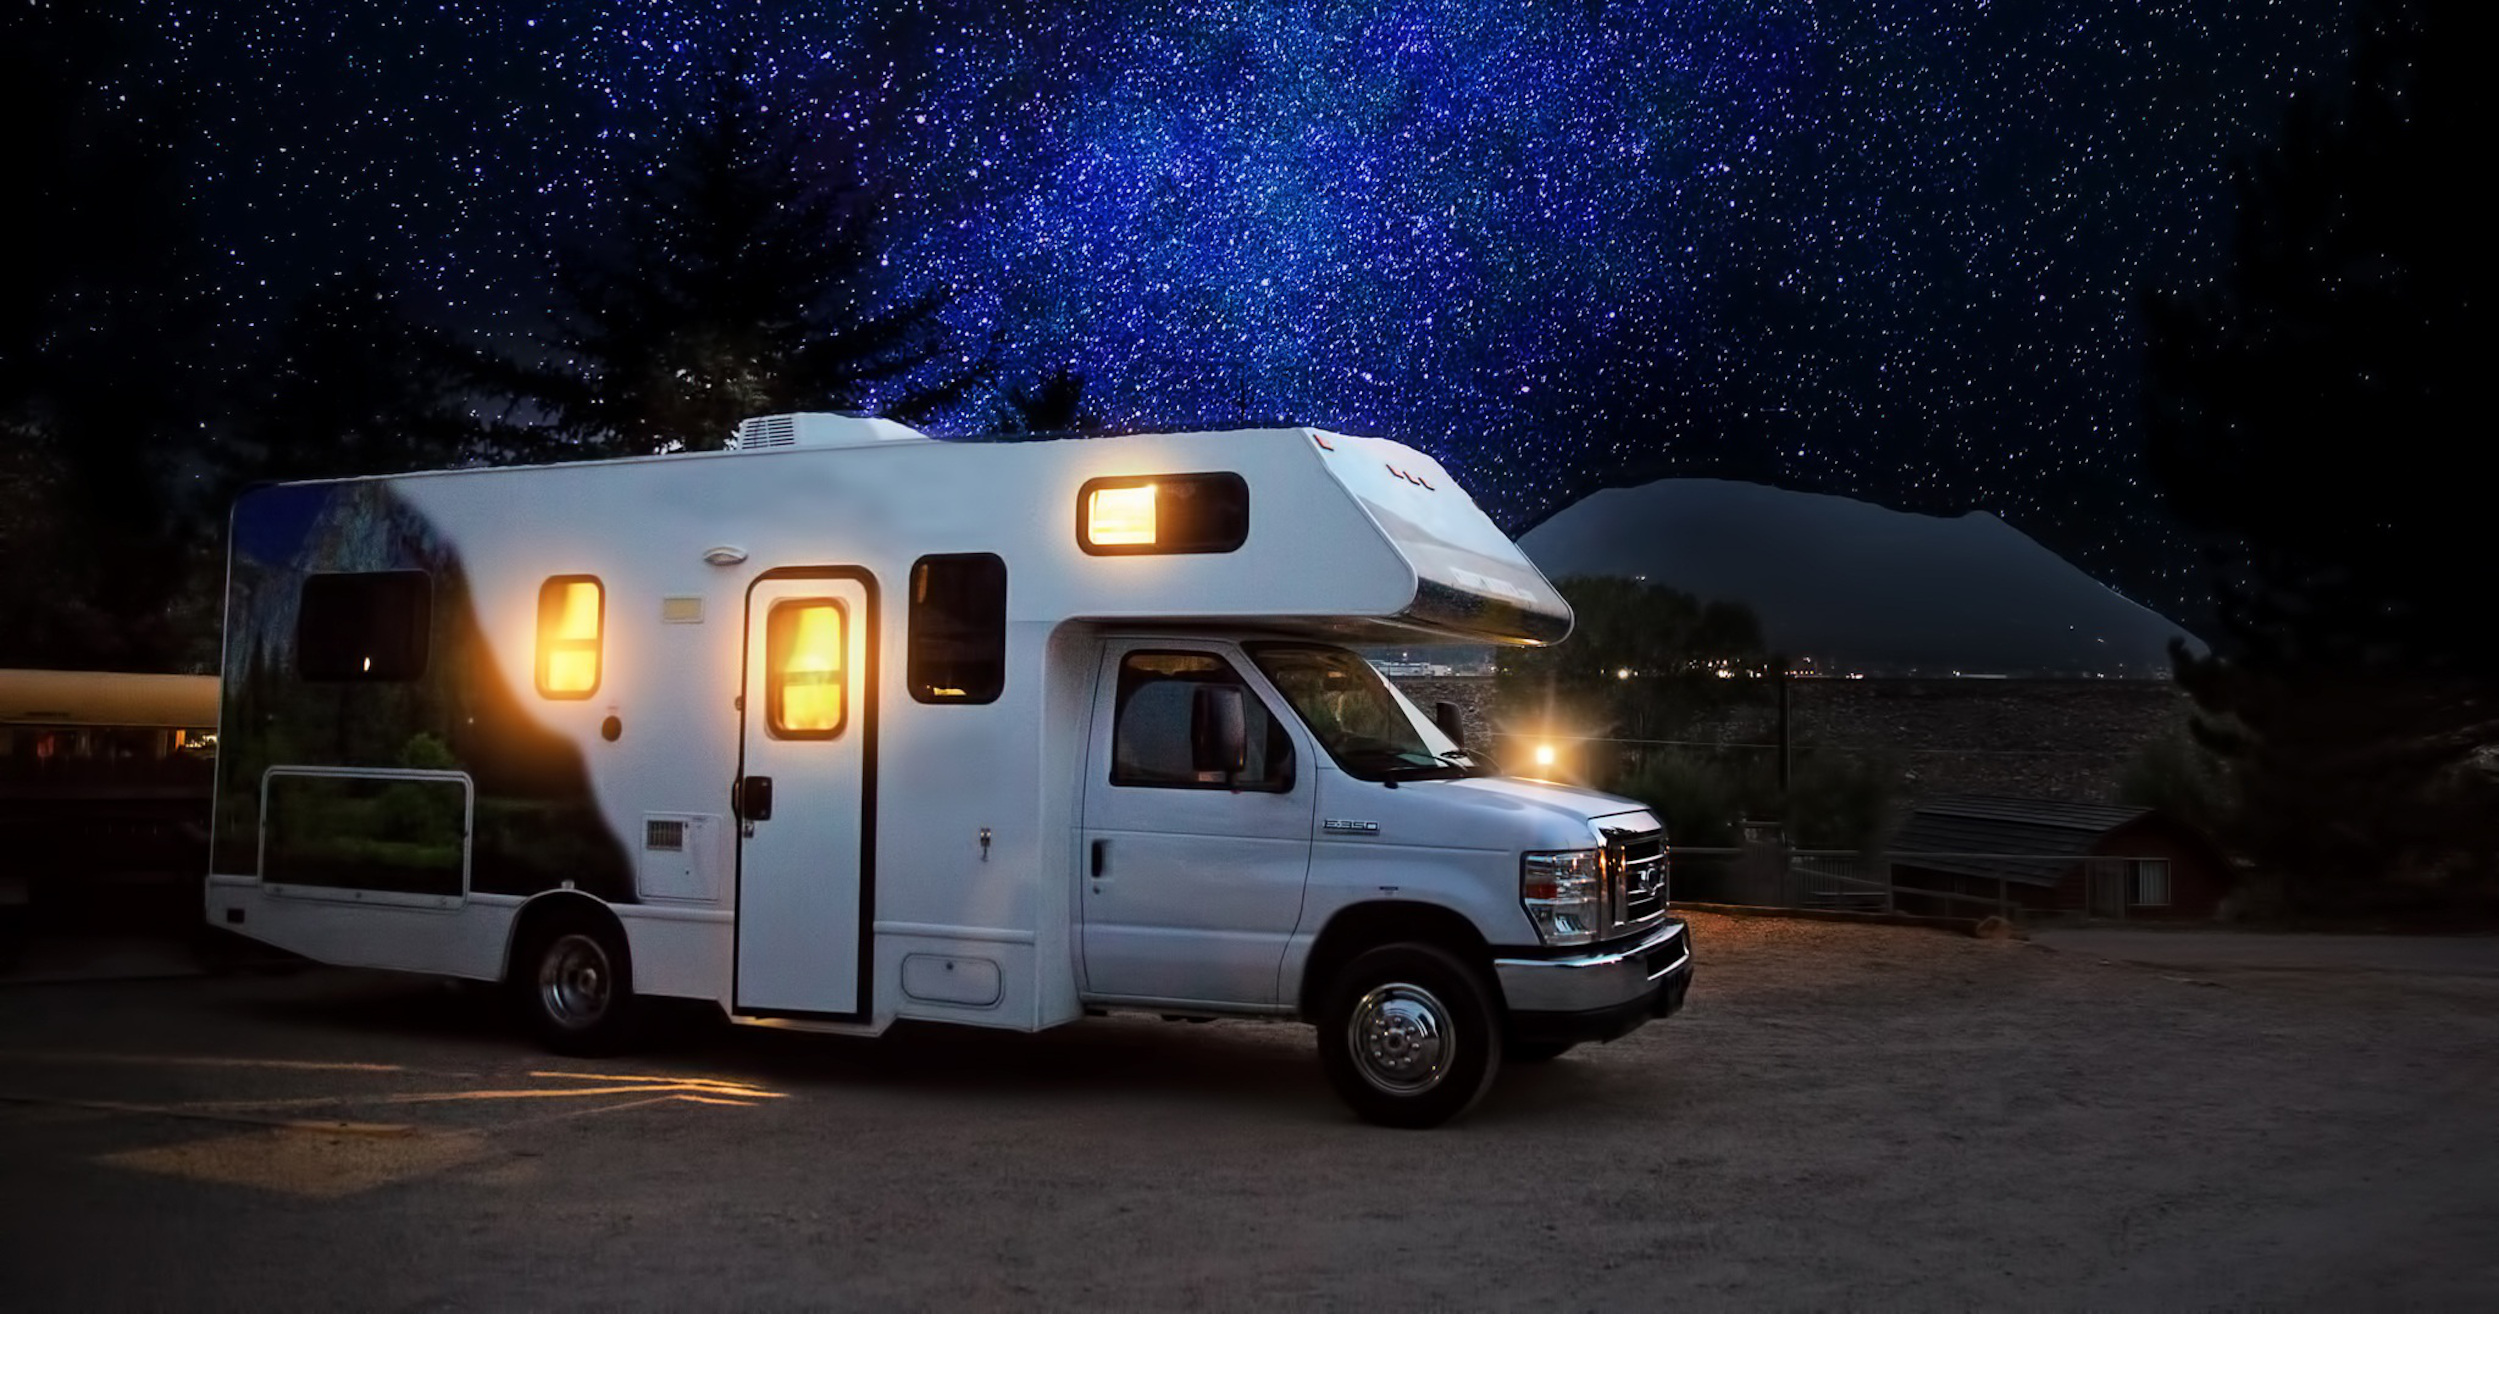 Renting an RV for a road trip. night stars